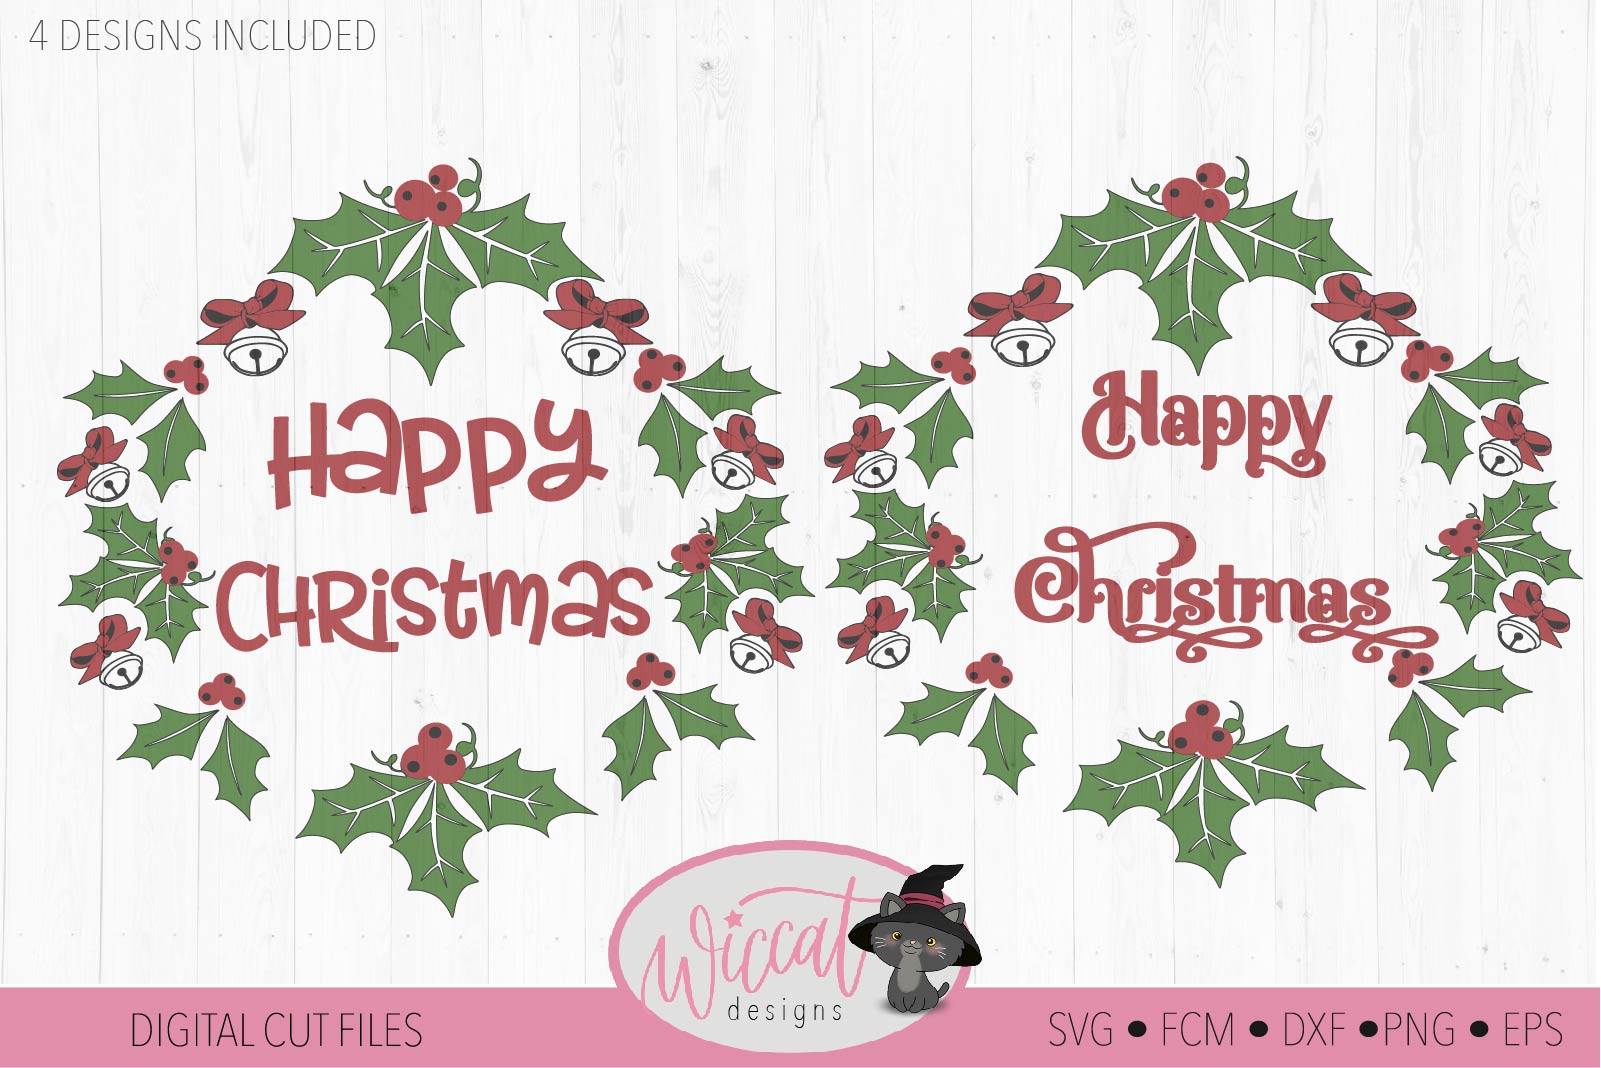 Merry Christmas wreath svg, Happy Christmas bells svg example image 2